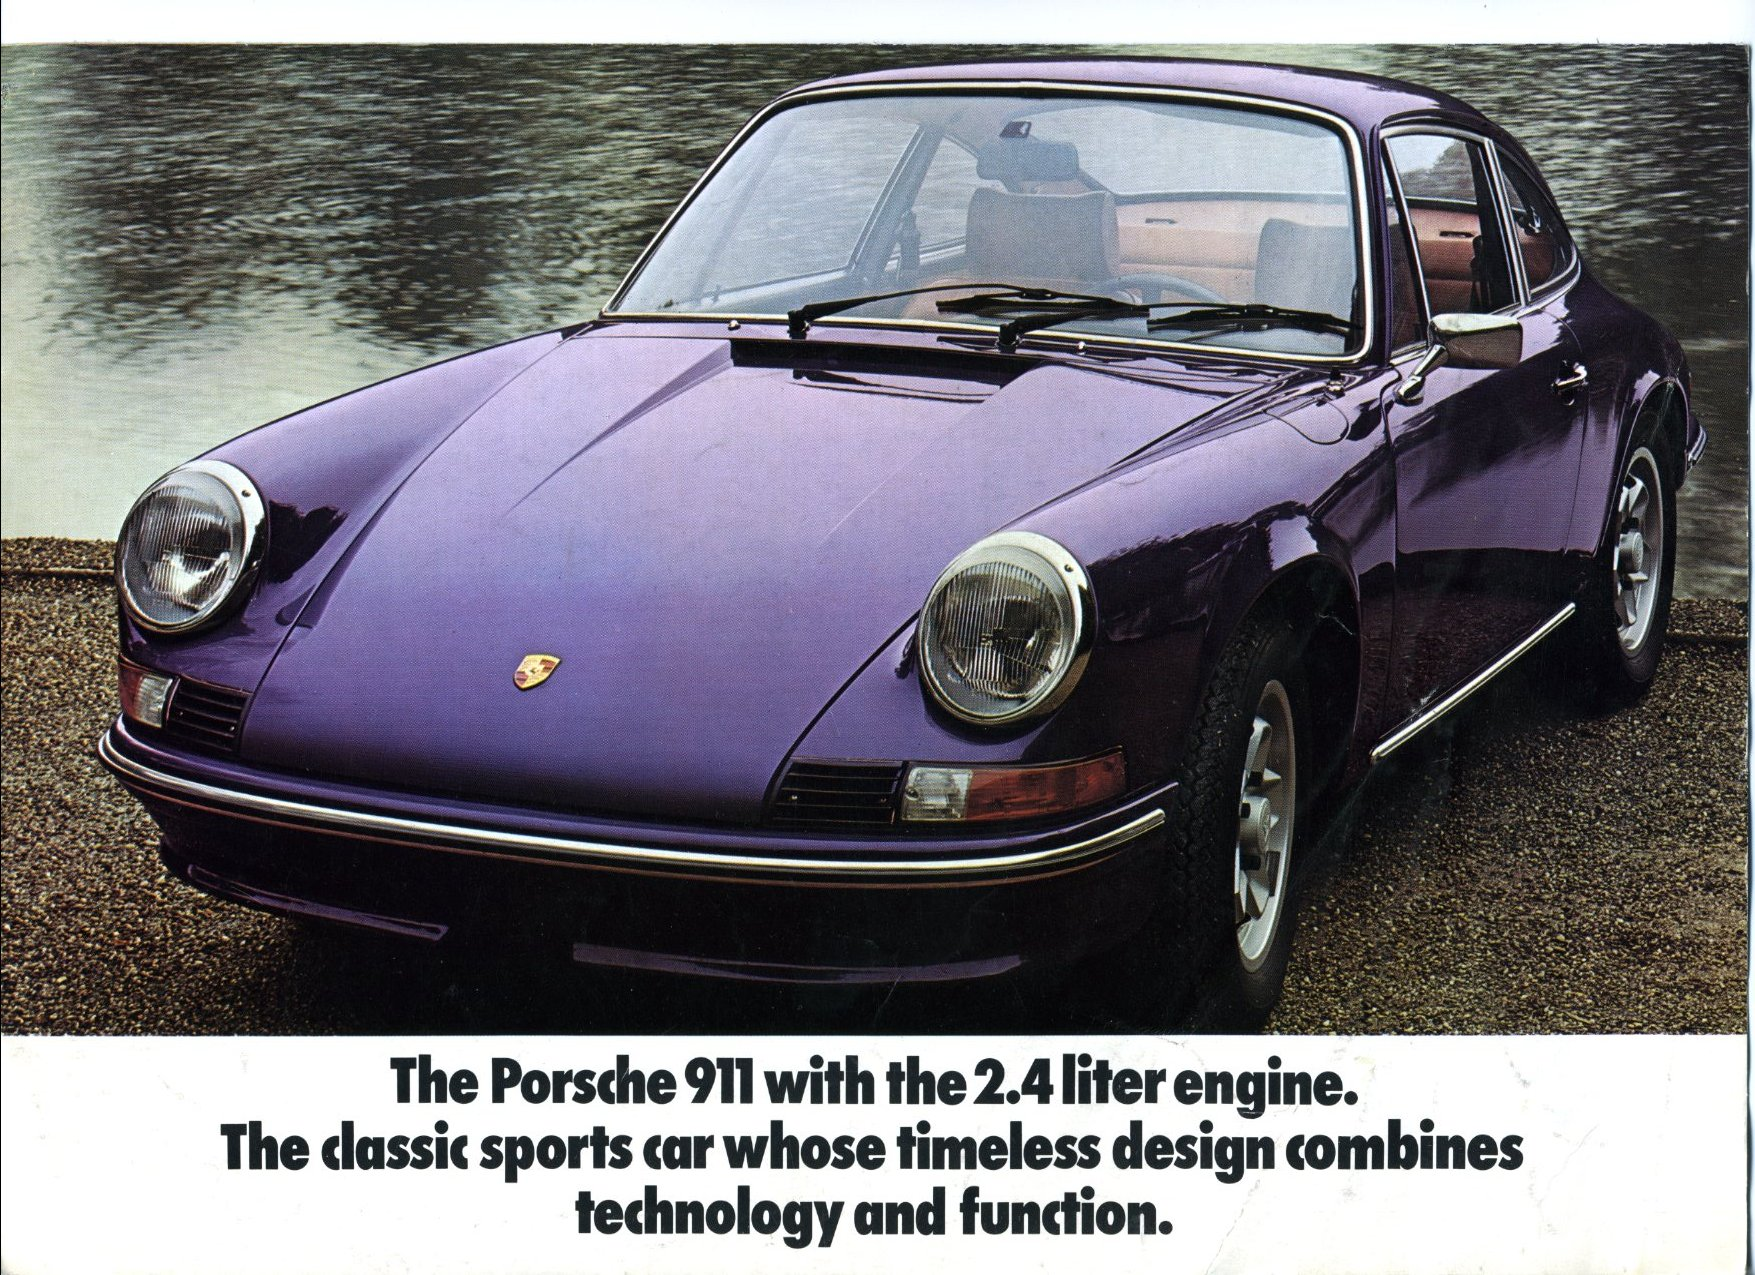 vw archives 1973 1974 porsche 911 sales. Black Bedroom Furniture Sets. Home Design Ideas